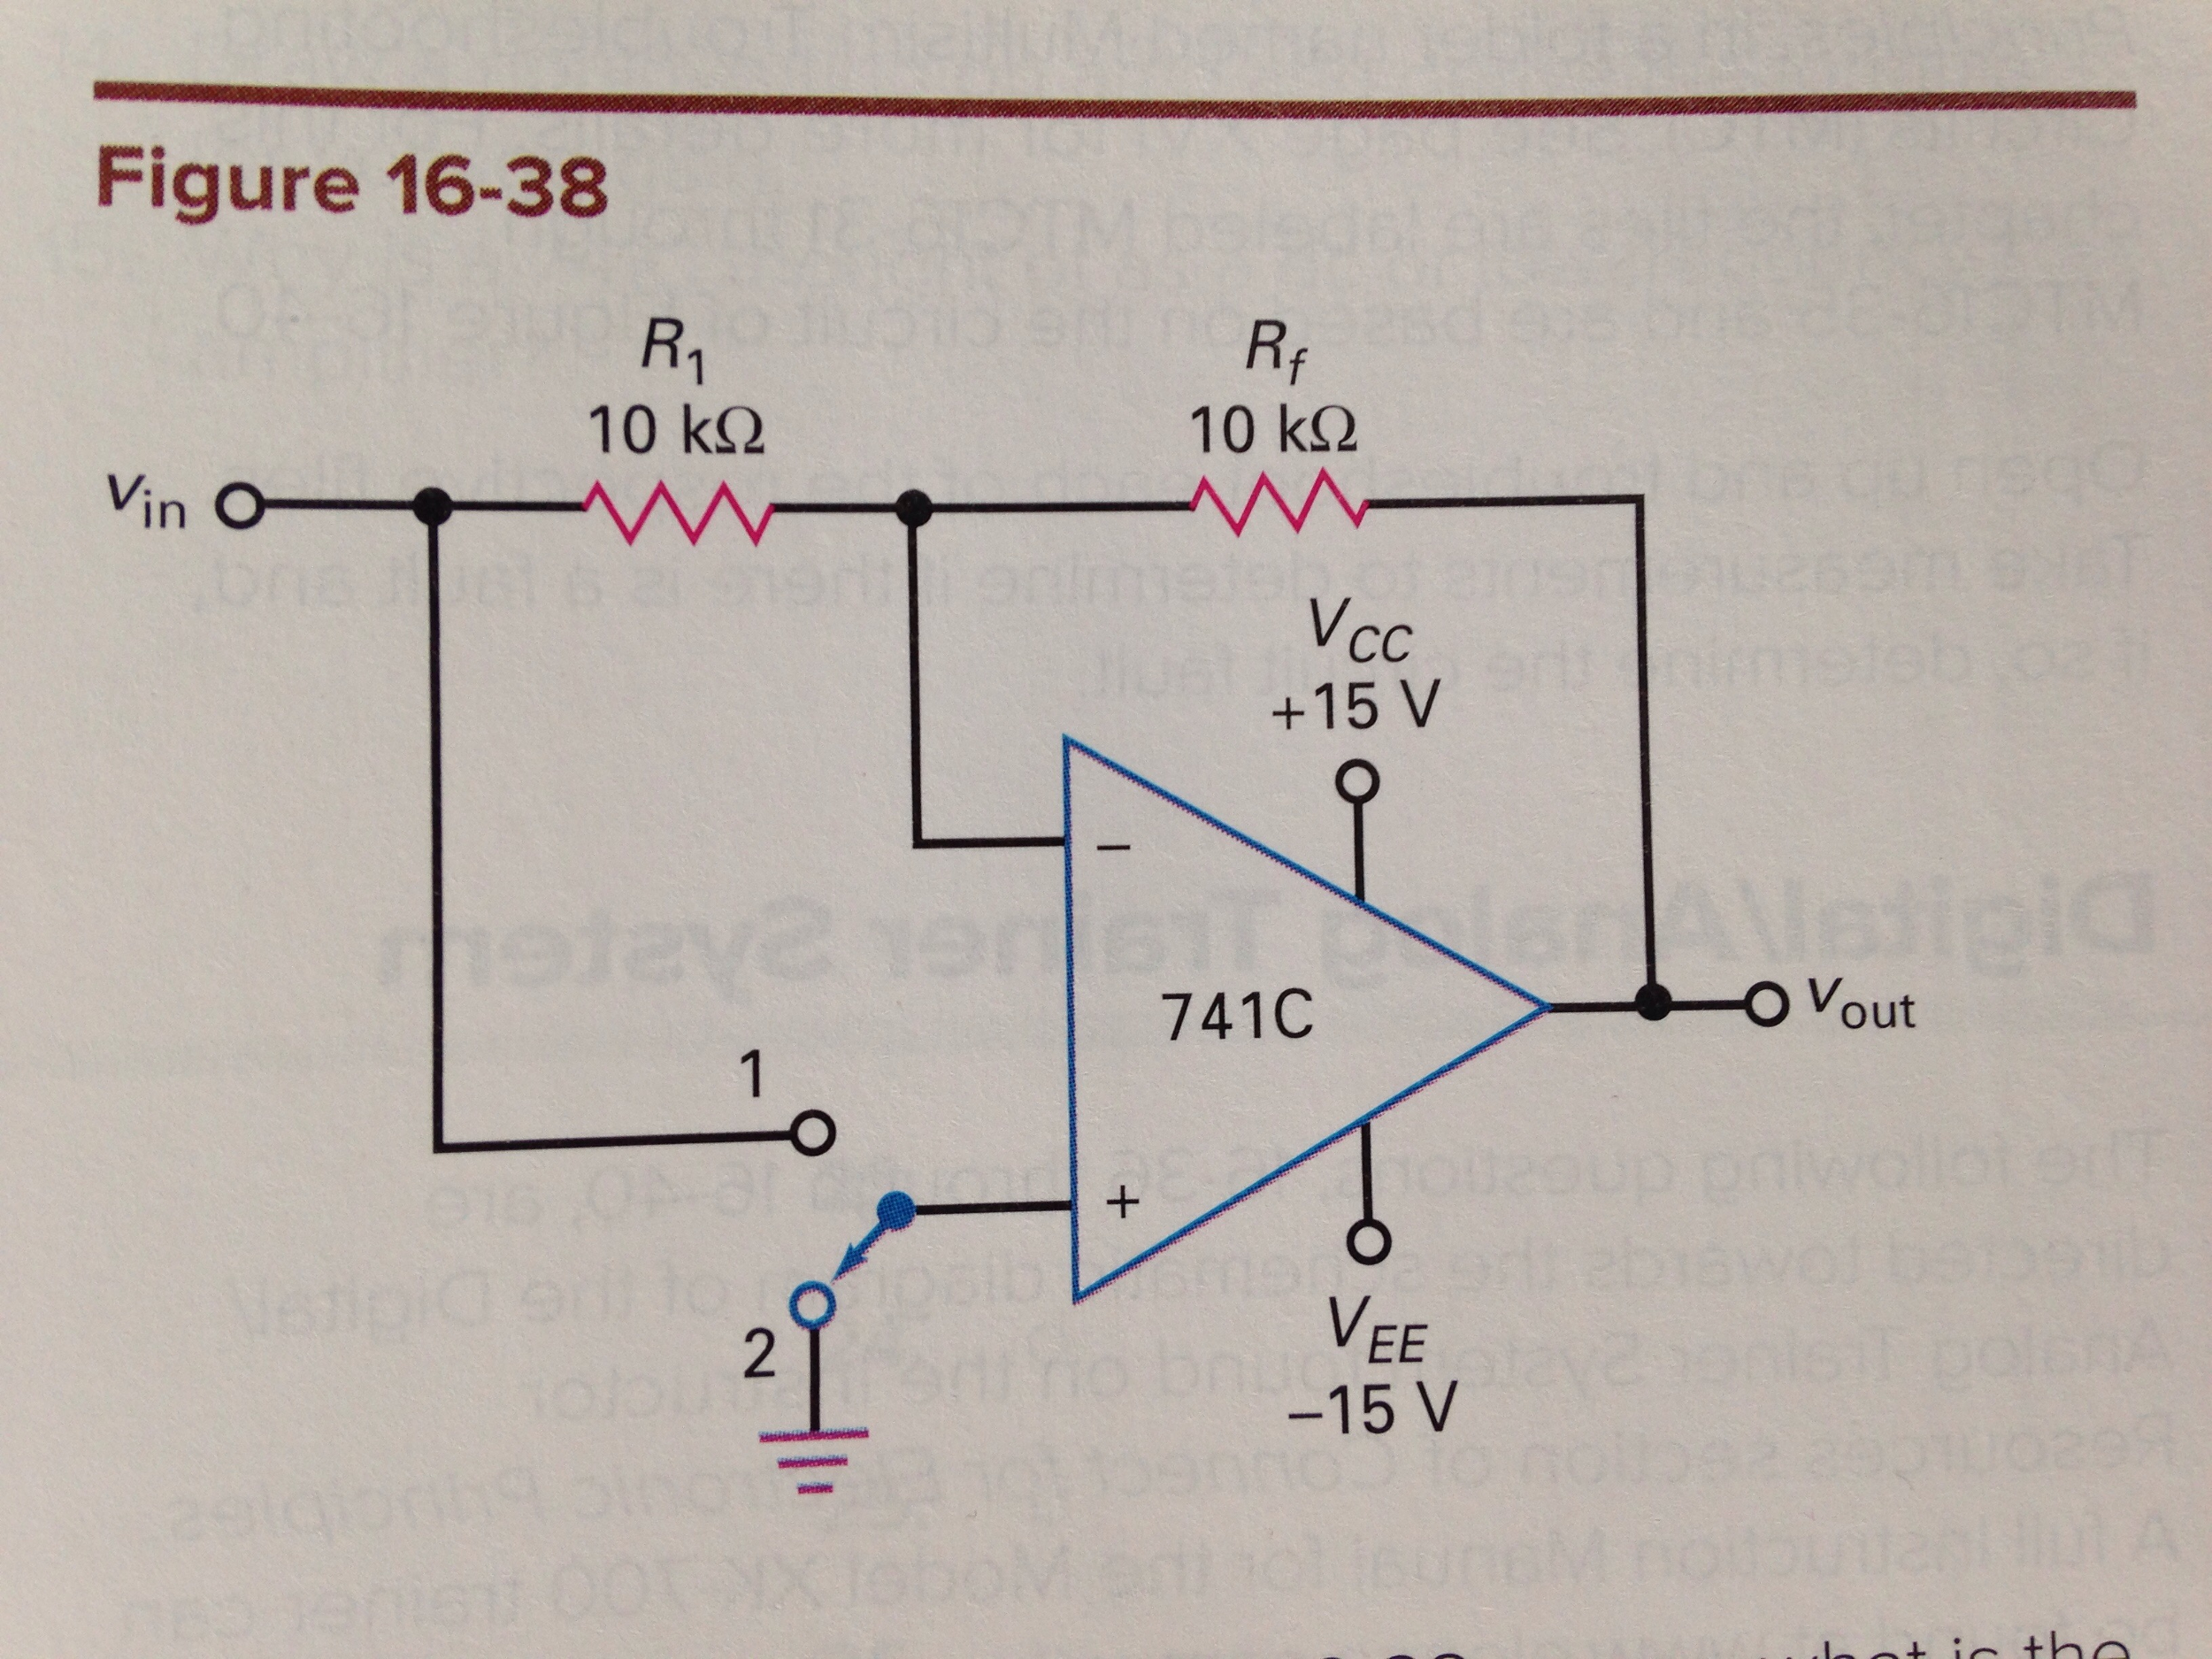 Solved: If The Input Resistor Of Fig. 16-38 Opens, What Is ...